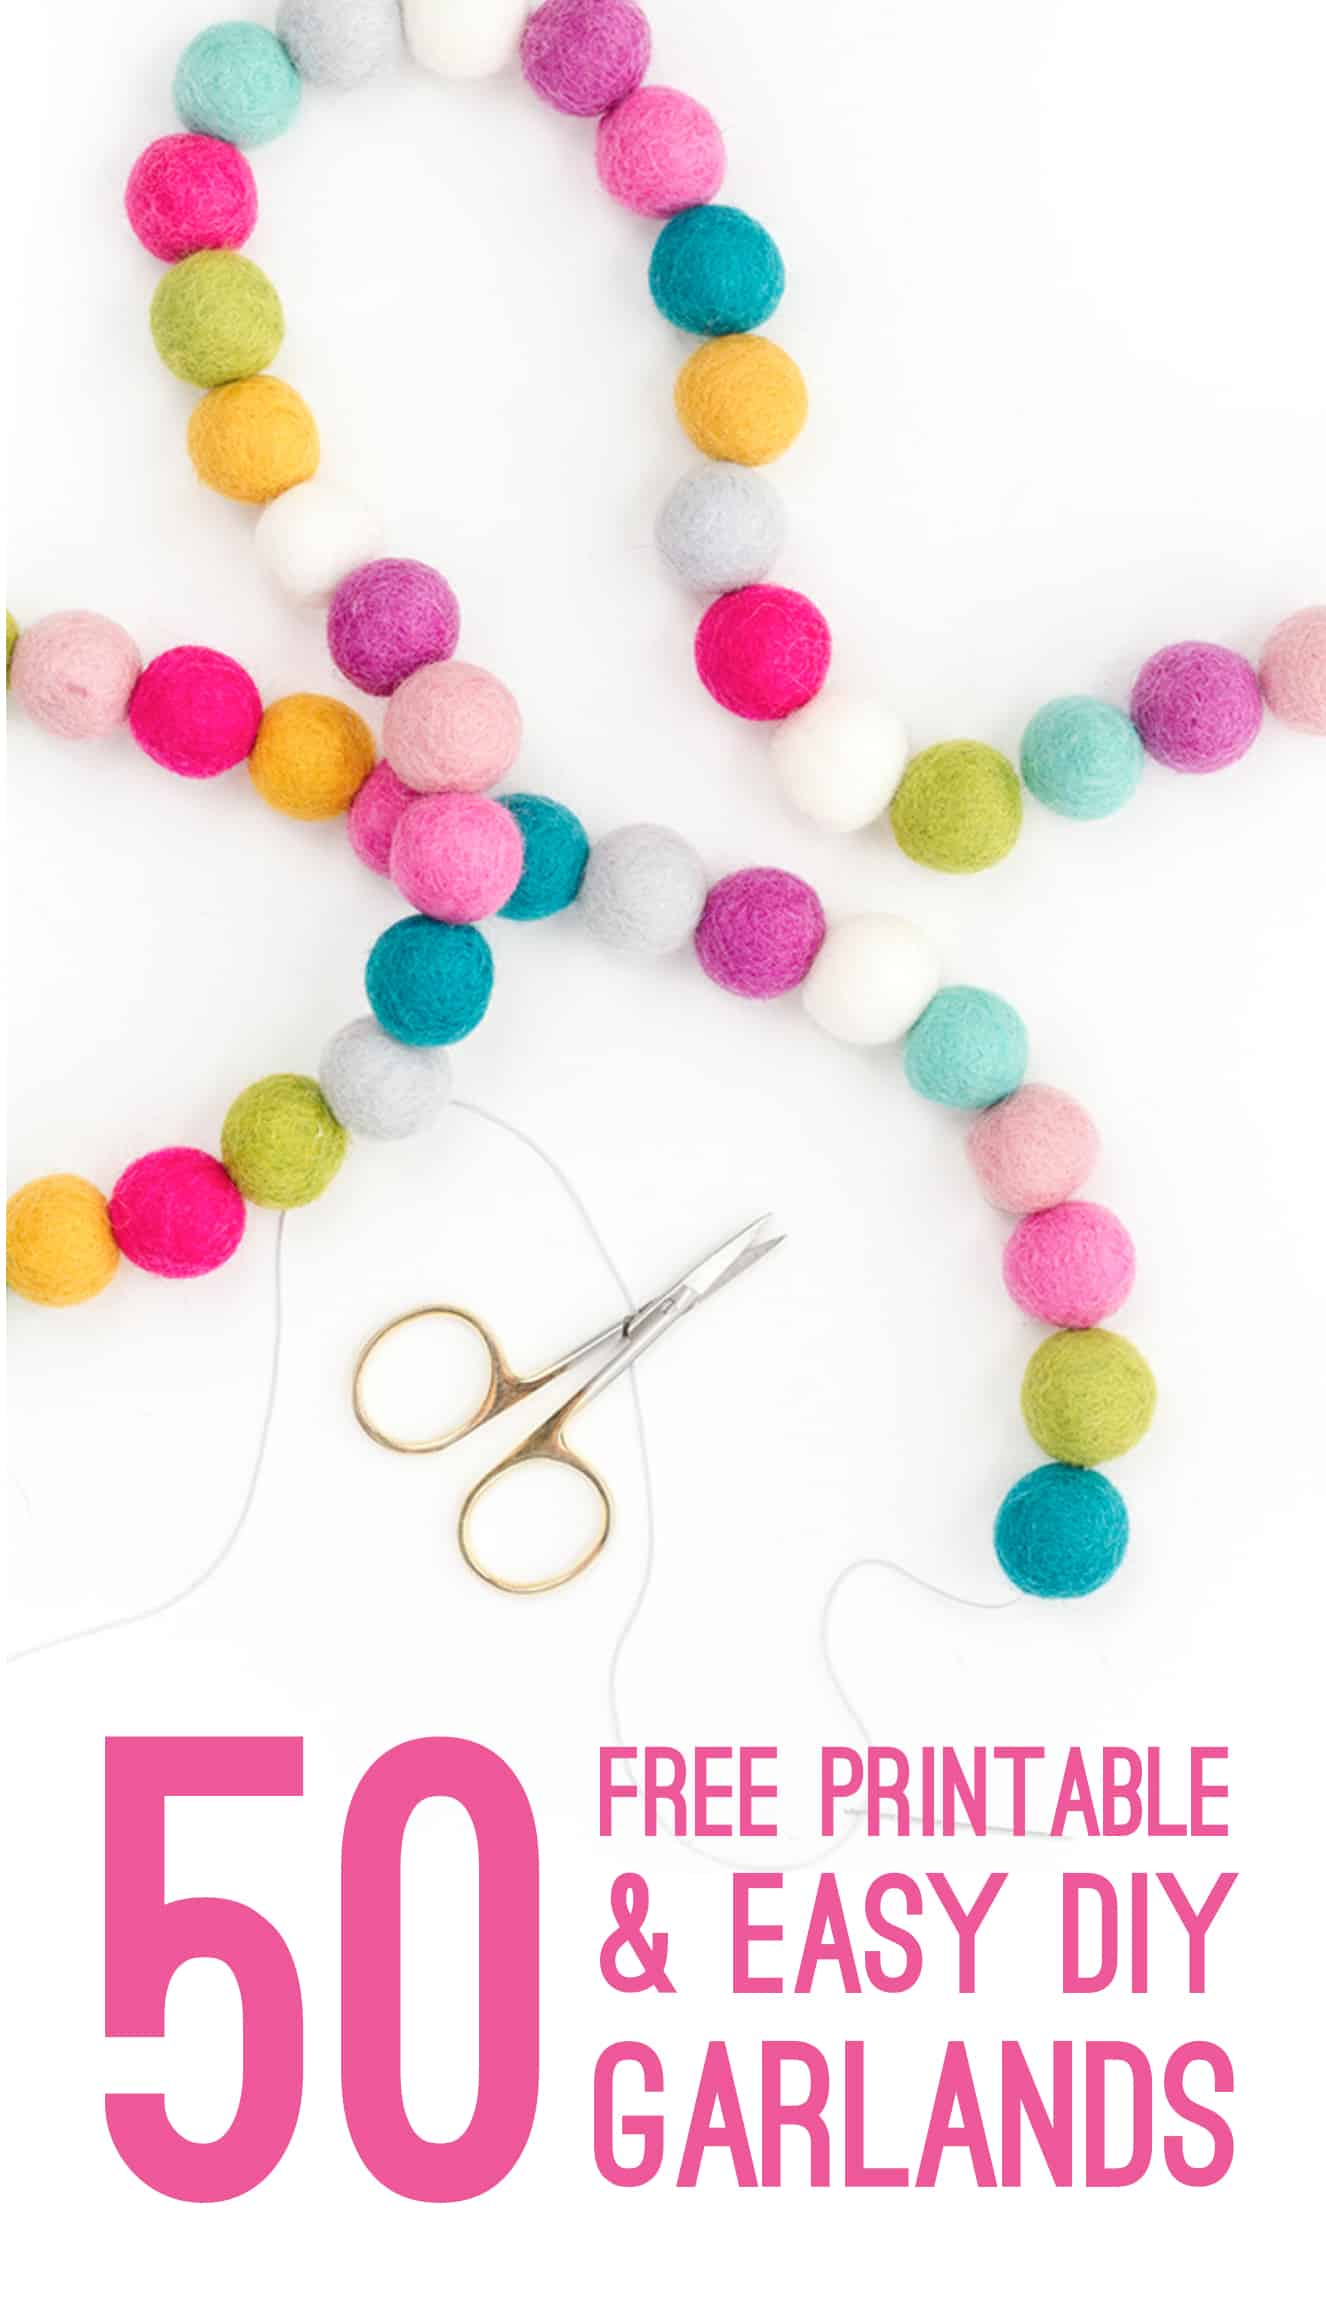 free-printable-garlands-diy-banners-wedding-party